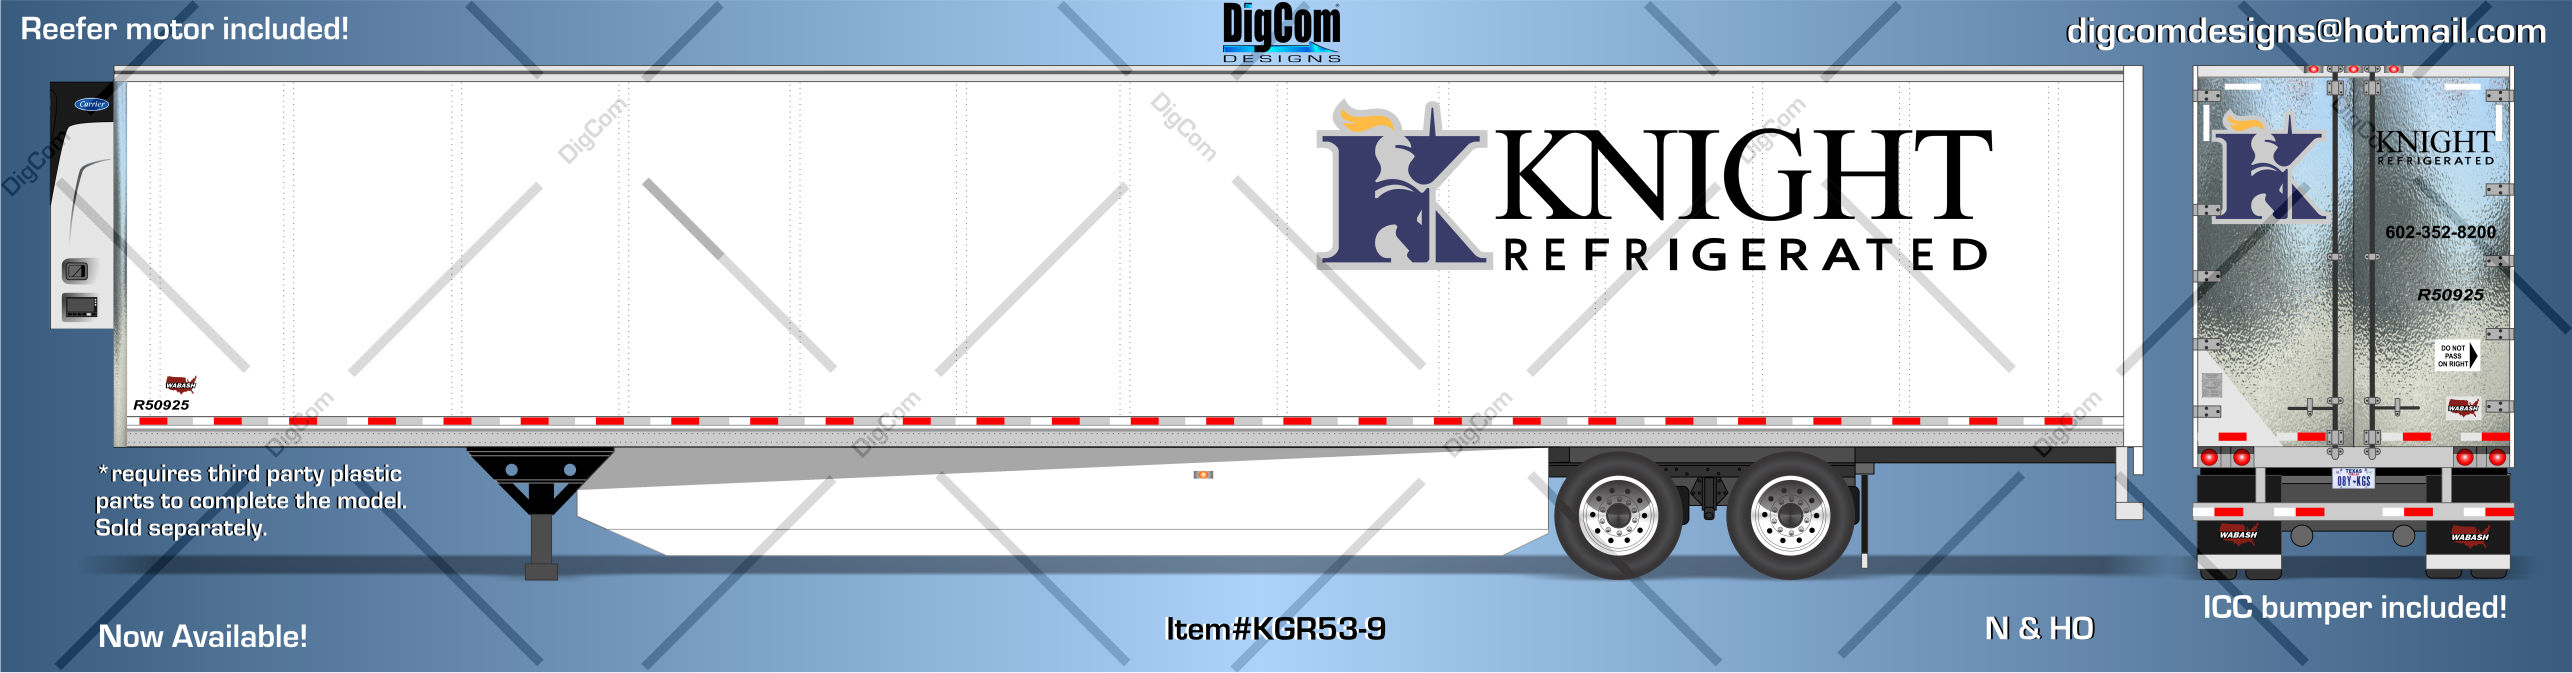 KNIGHT REEFER TRAILER DESIGN.jpg